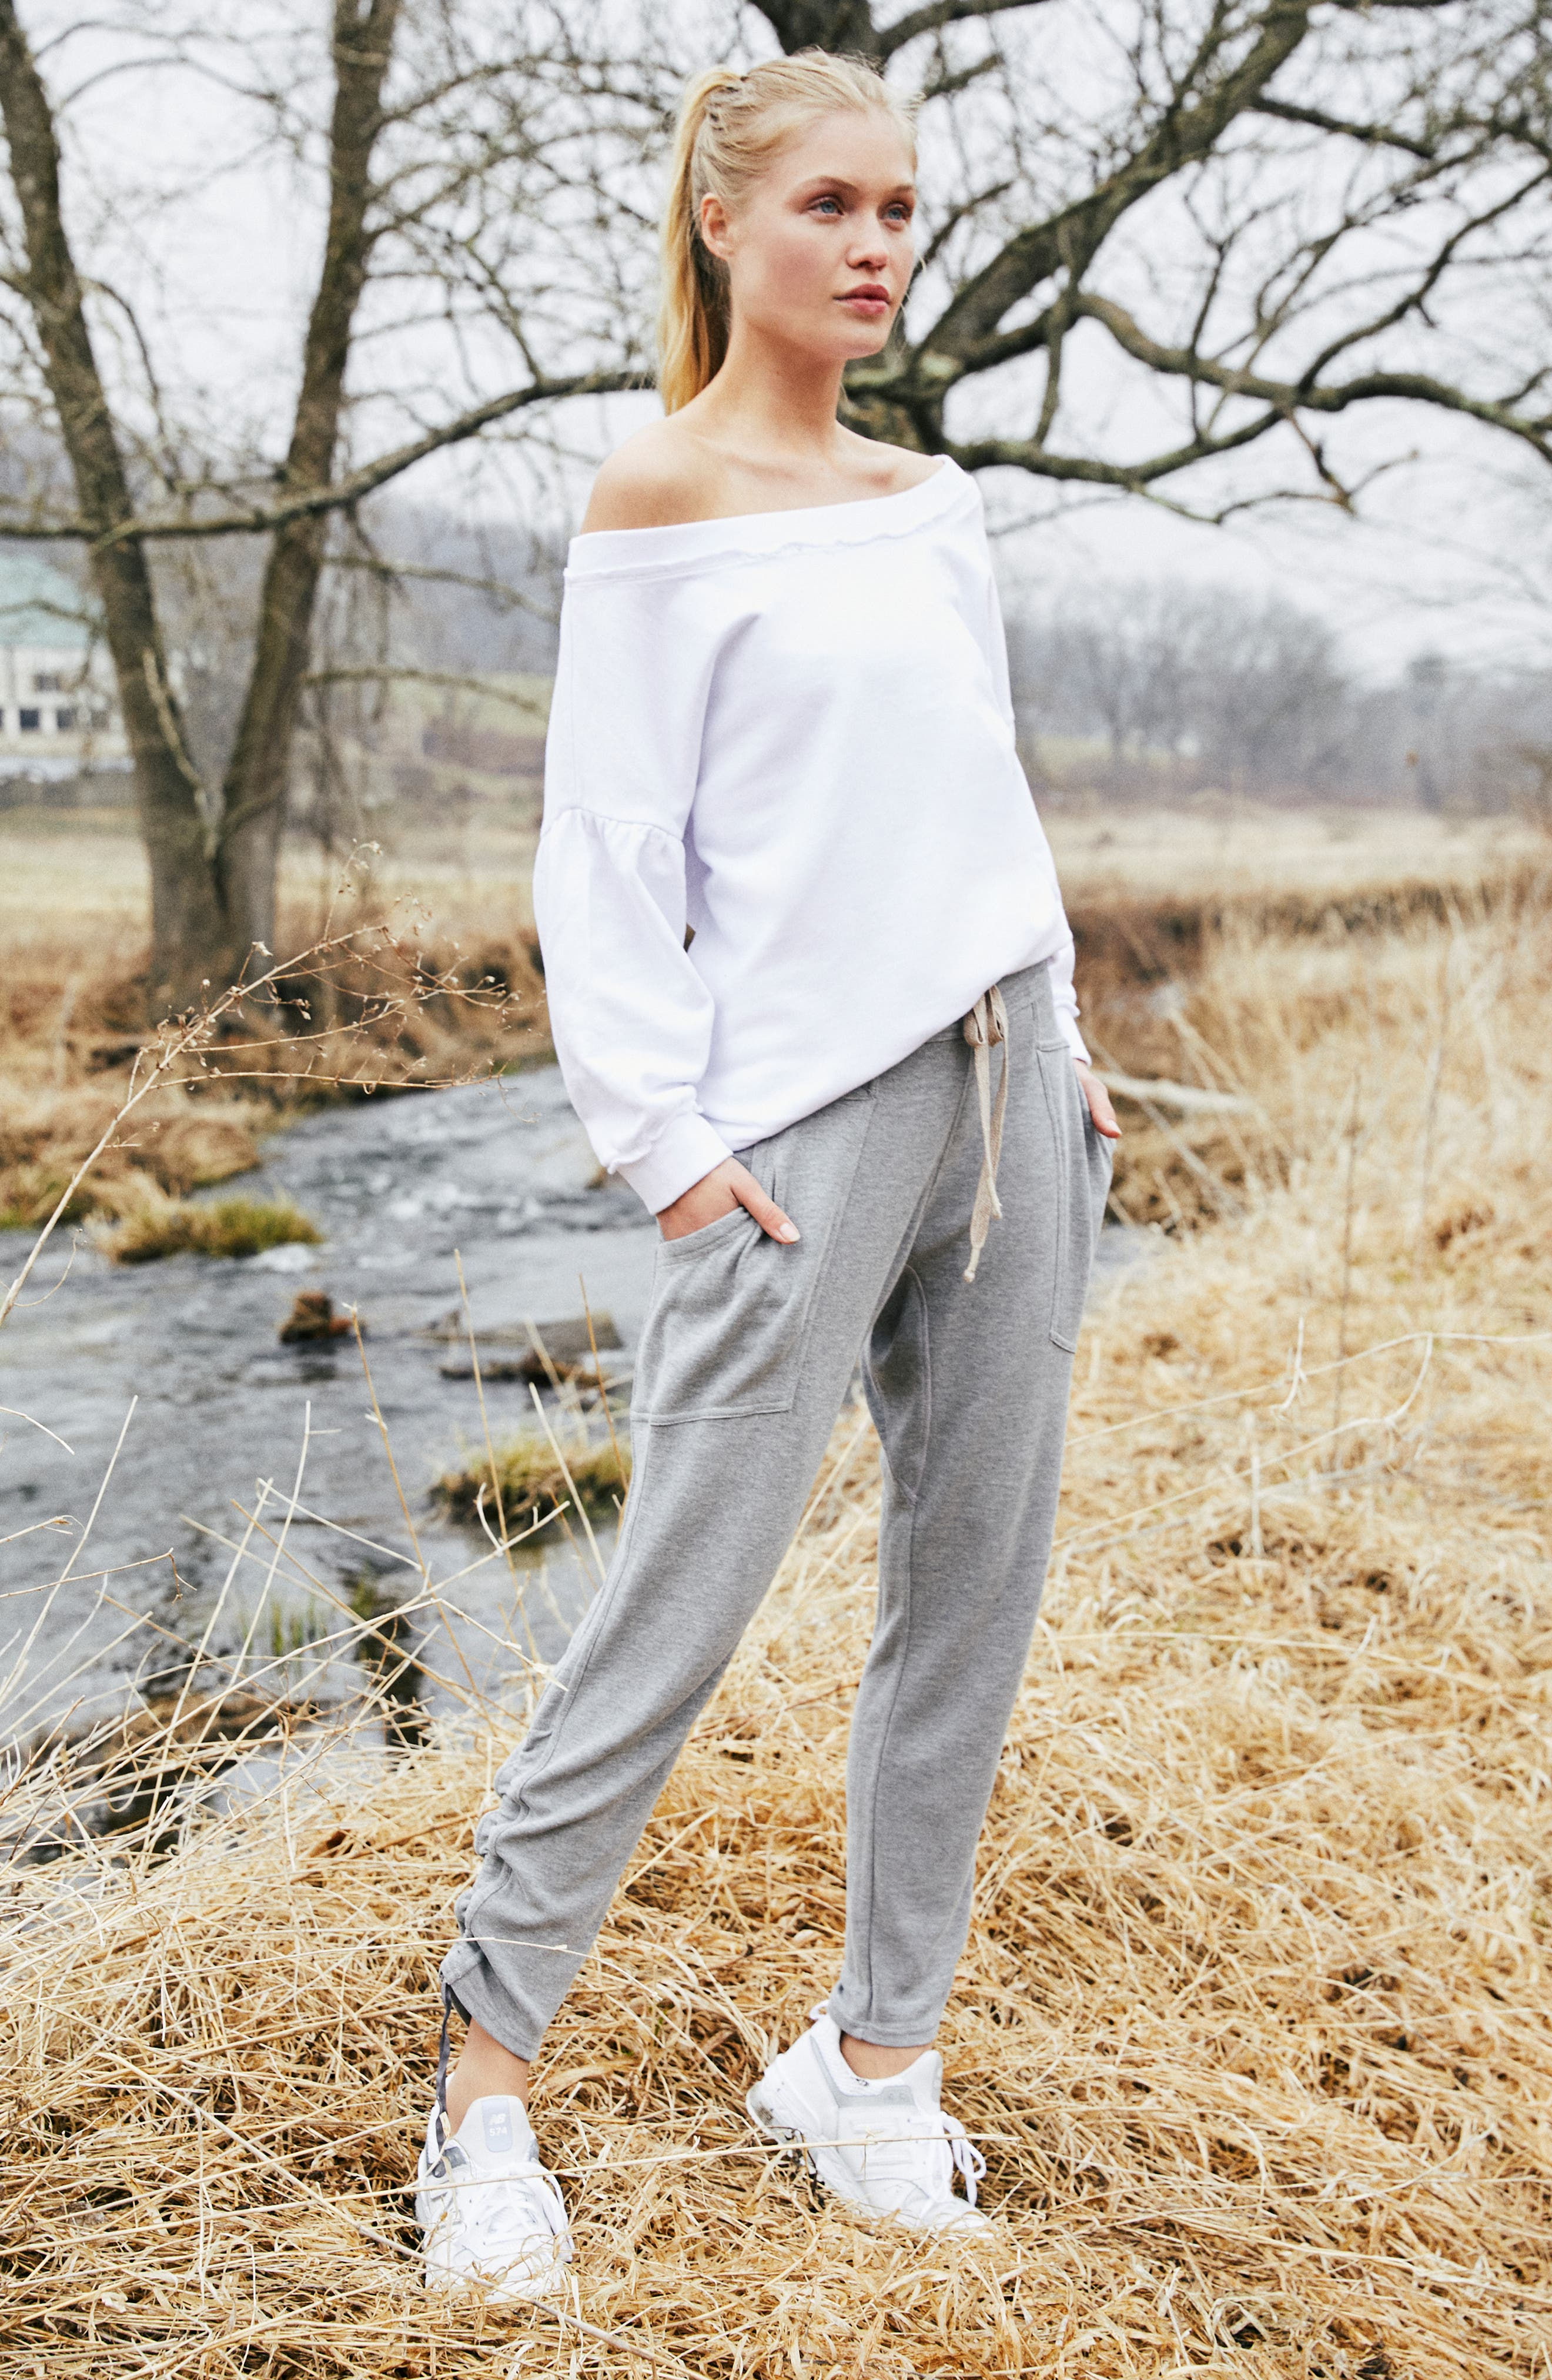 Free People FP Movement Ready Go Jogger Pants,                             Alternate thumbnail 7, color,                             GREY COMBO